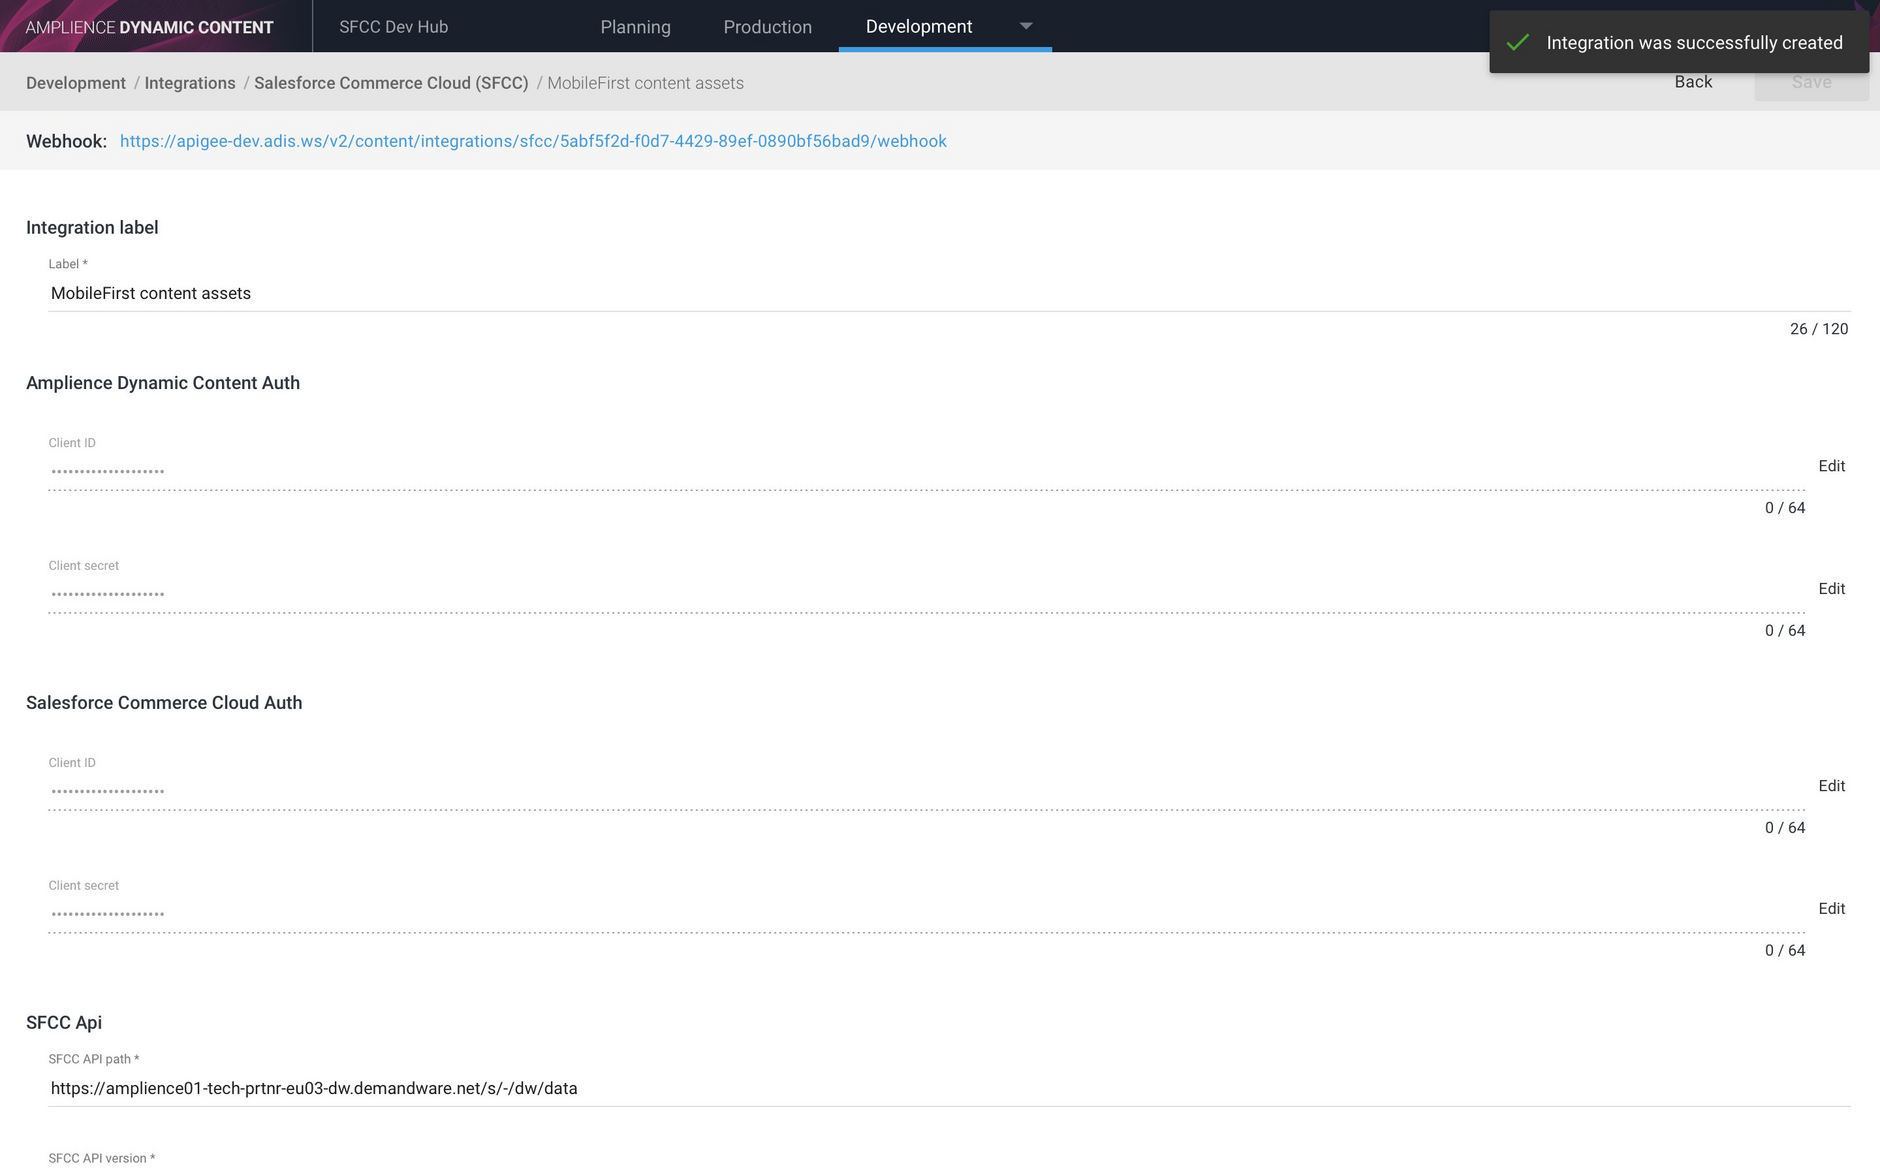 The content asset has been successfully created and its webhook is displayed